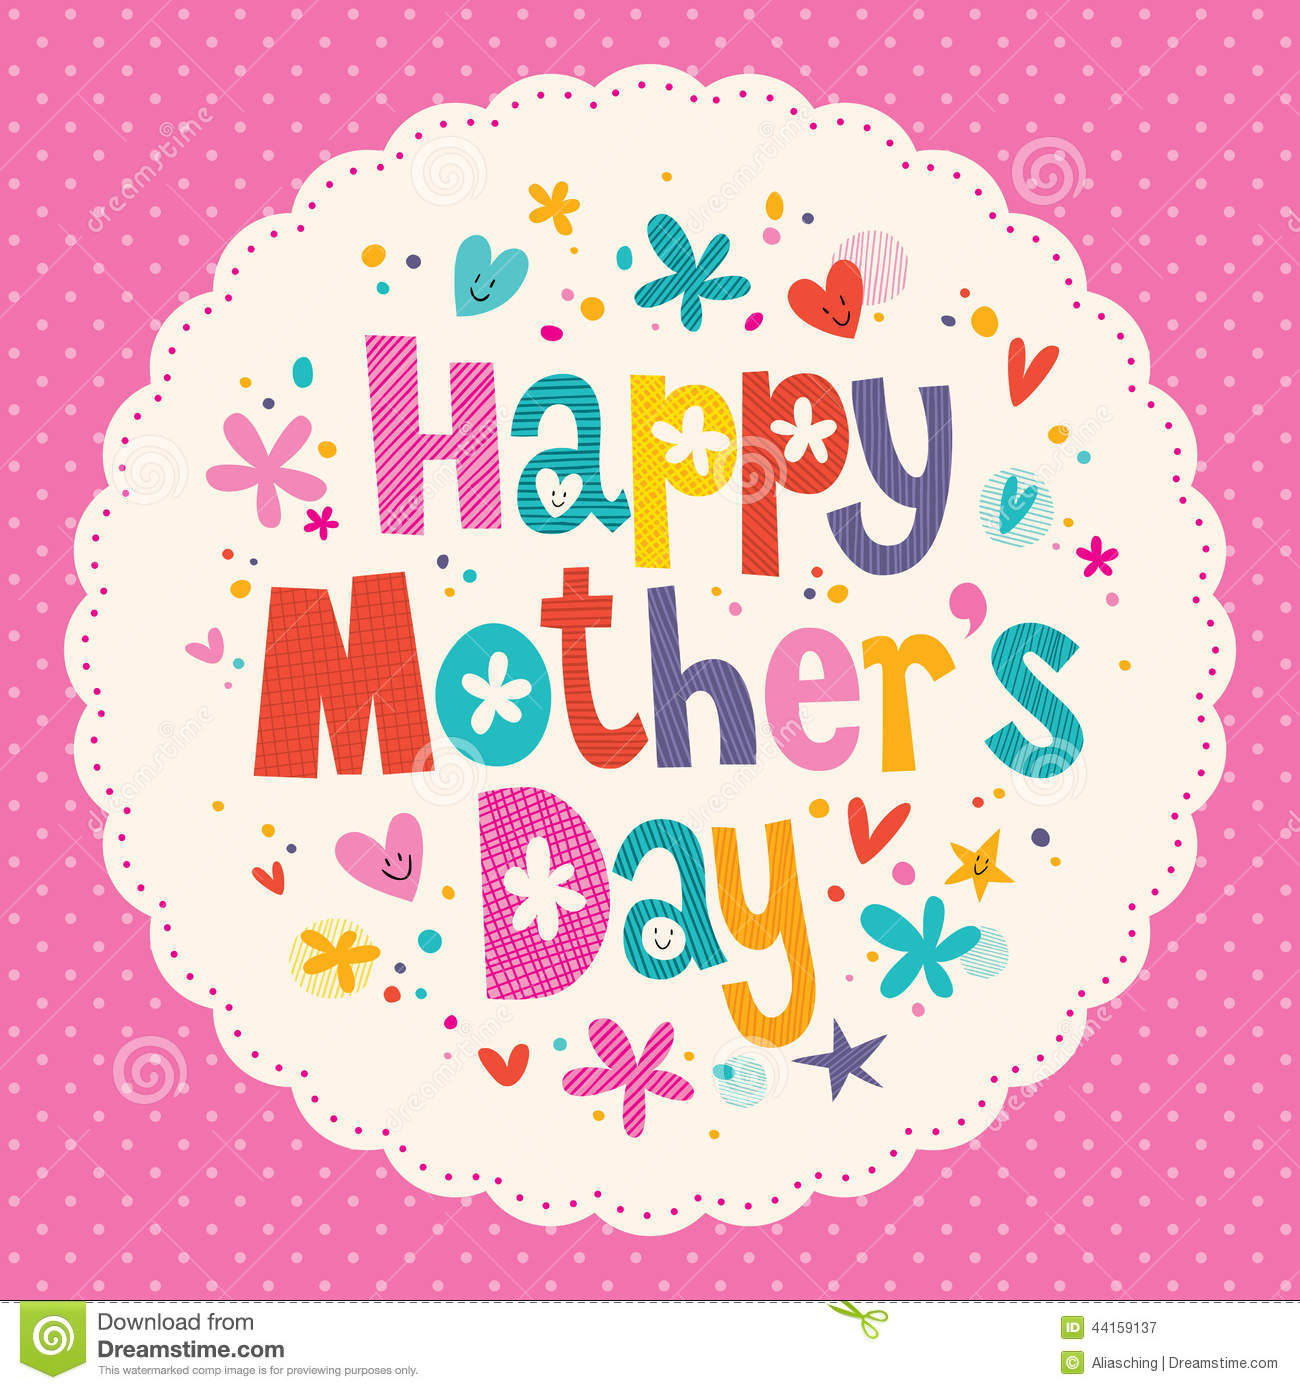 Royalty Free Vector. Download Happy Motheru0027s Day Card ...